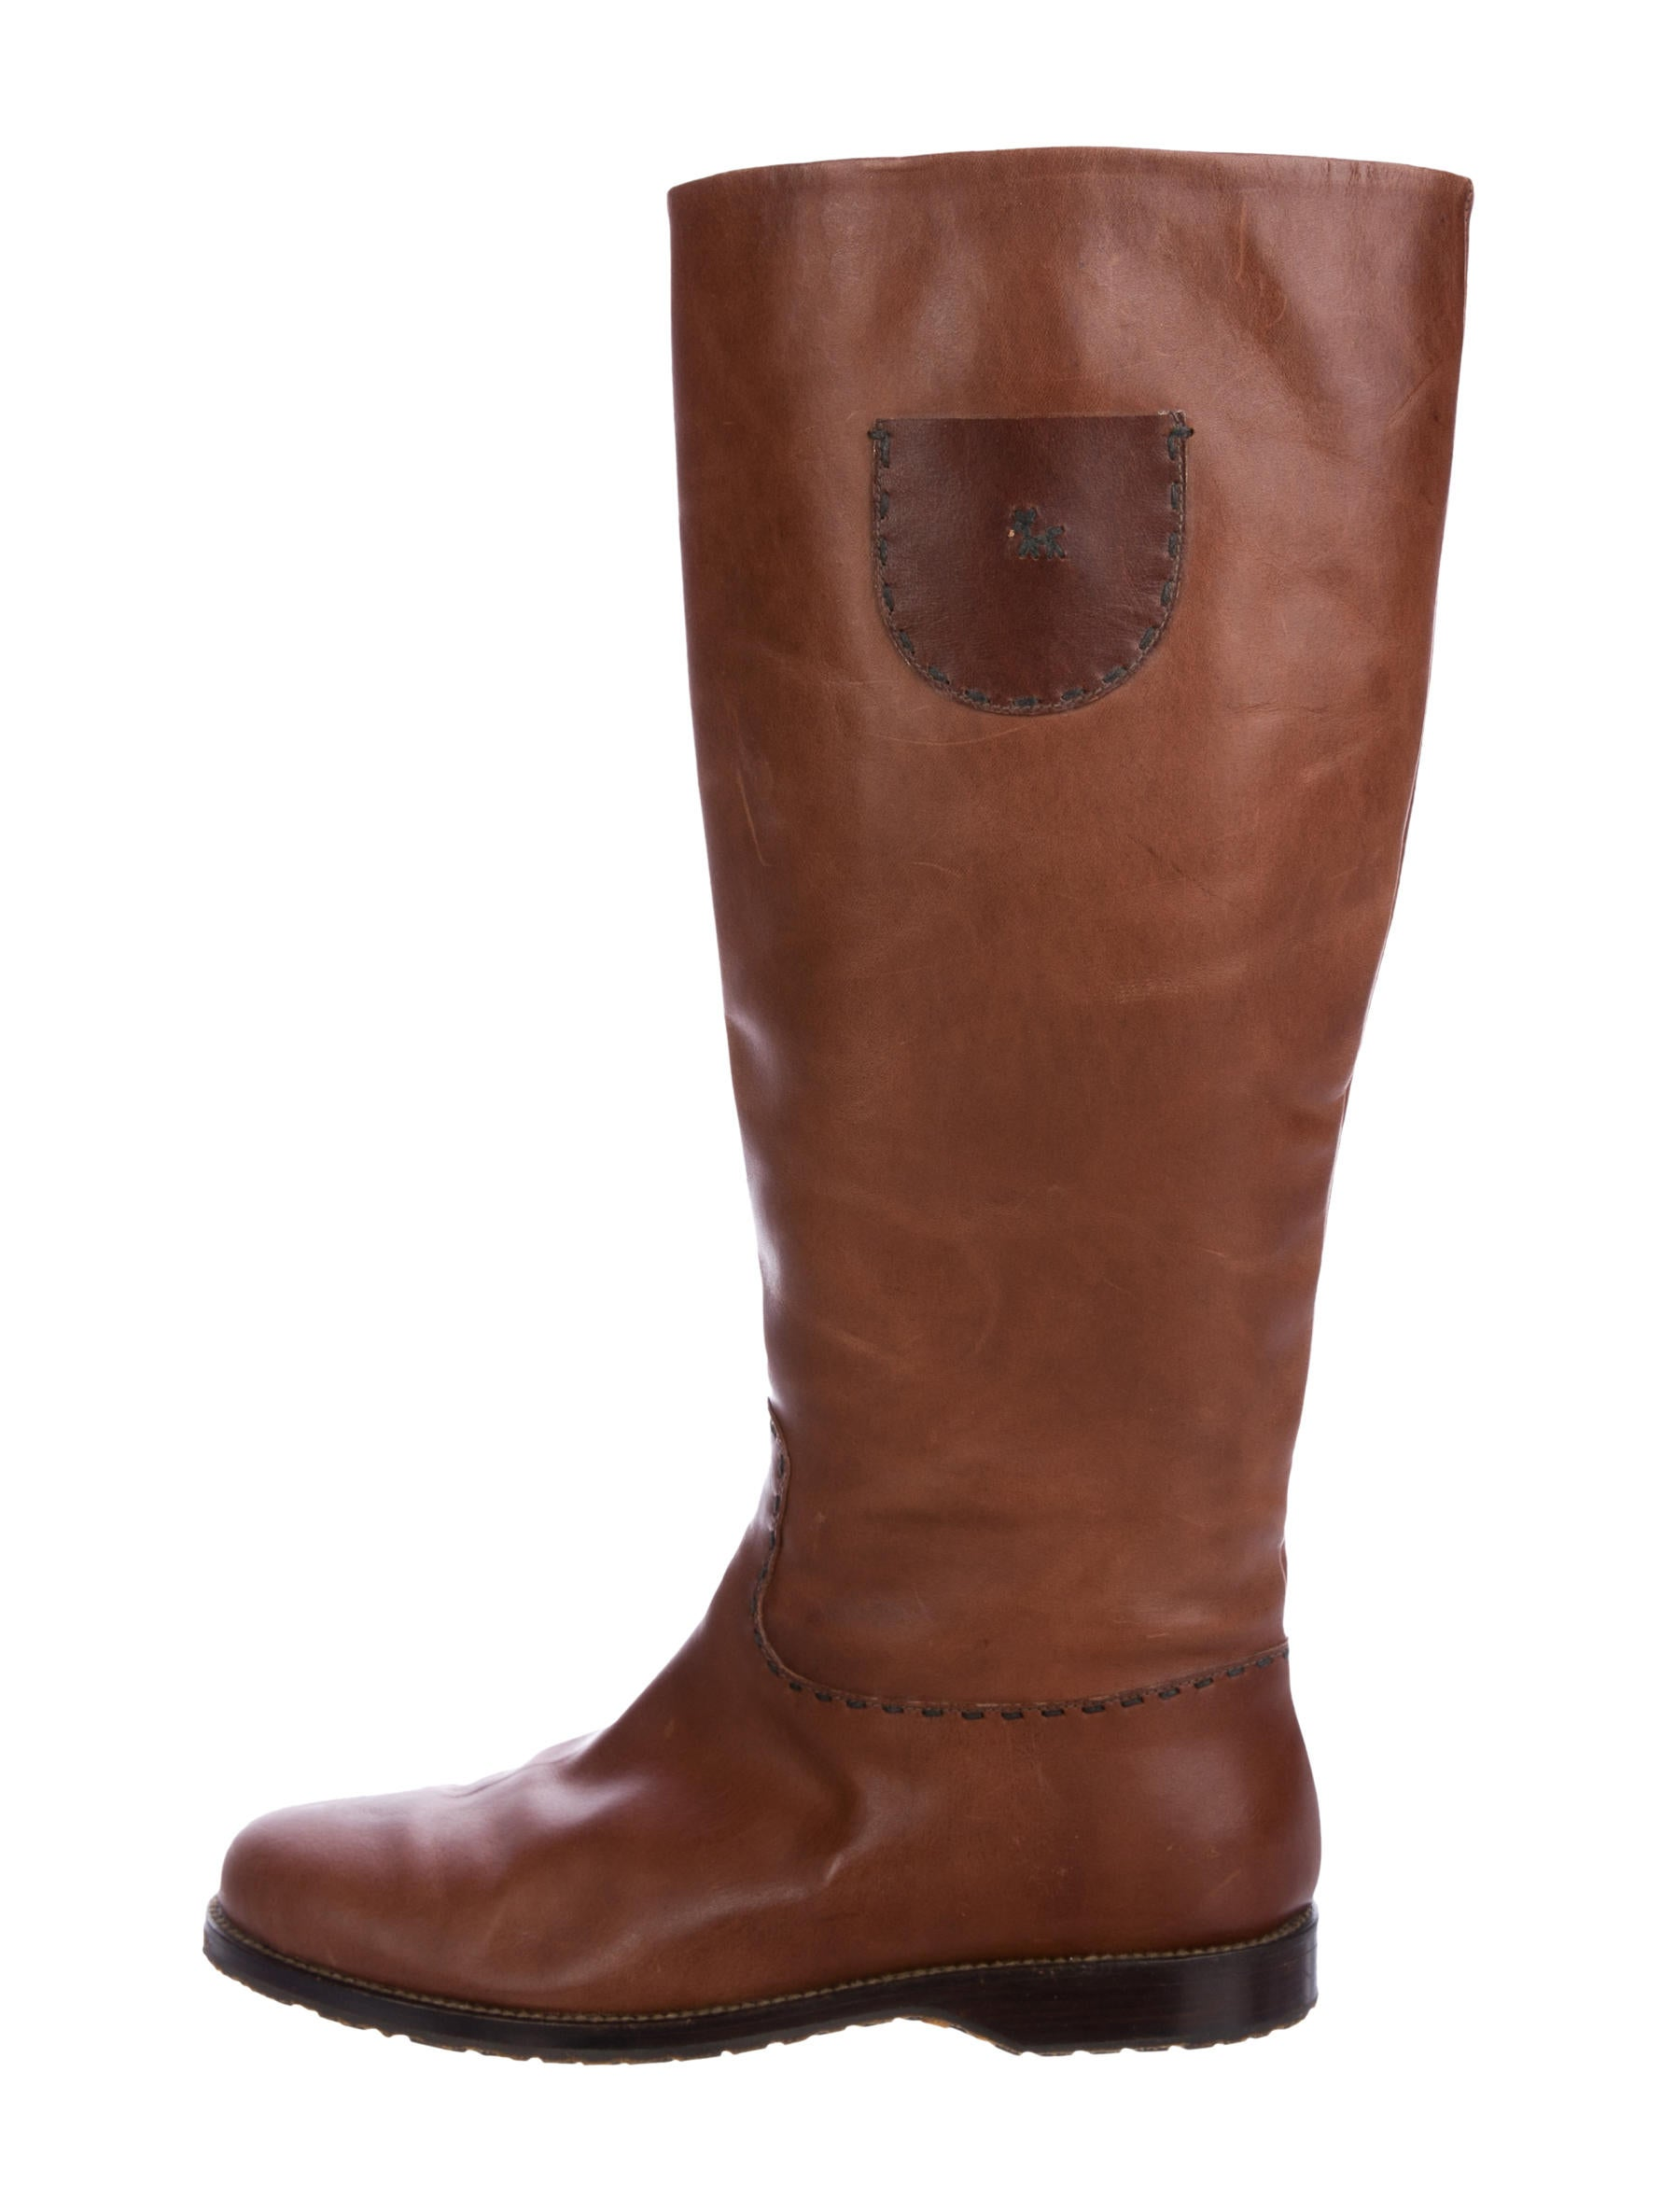 outlet from china Henry Cuir Leather Knee-High Boots shop for cheap price with credit card for sale cheap outlet store outlet enjoy UbwaG